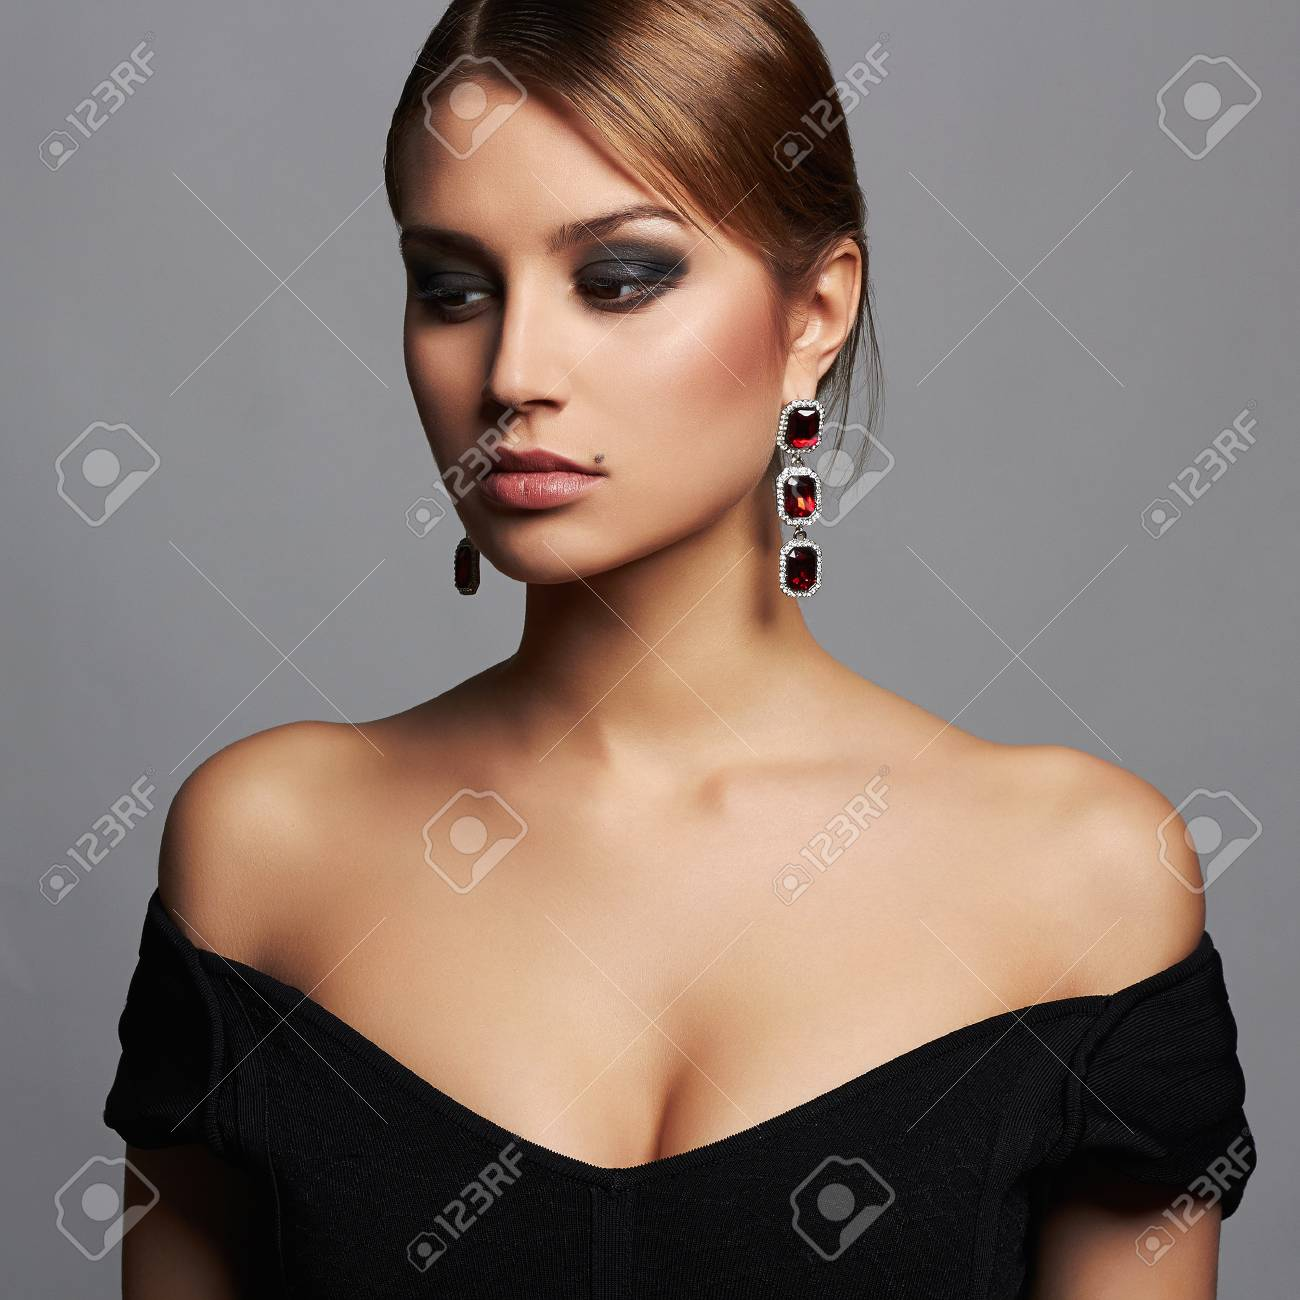 Young Beautiful Sexy Woman Beauty Girl With Short Hair And Make Up